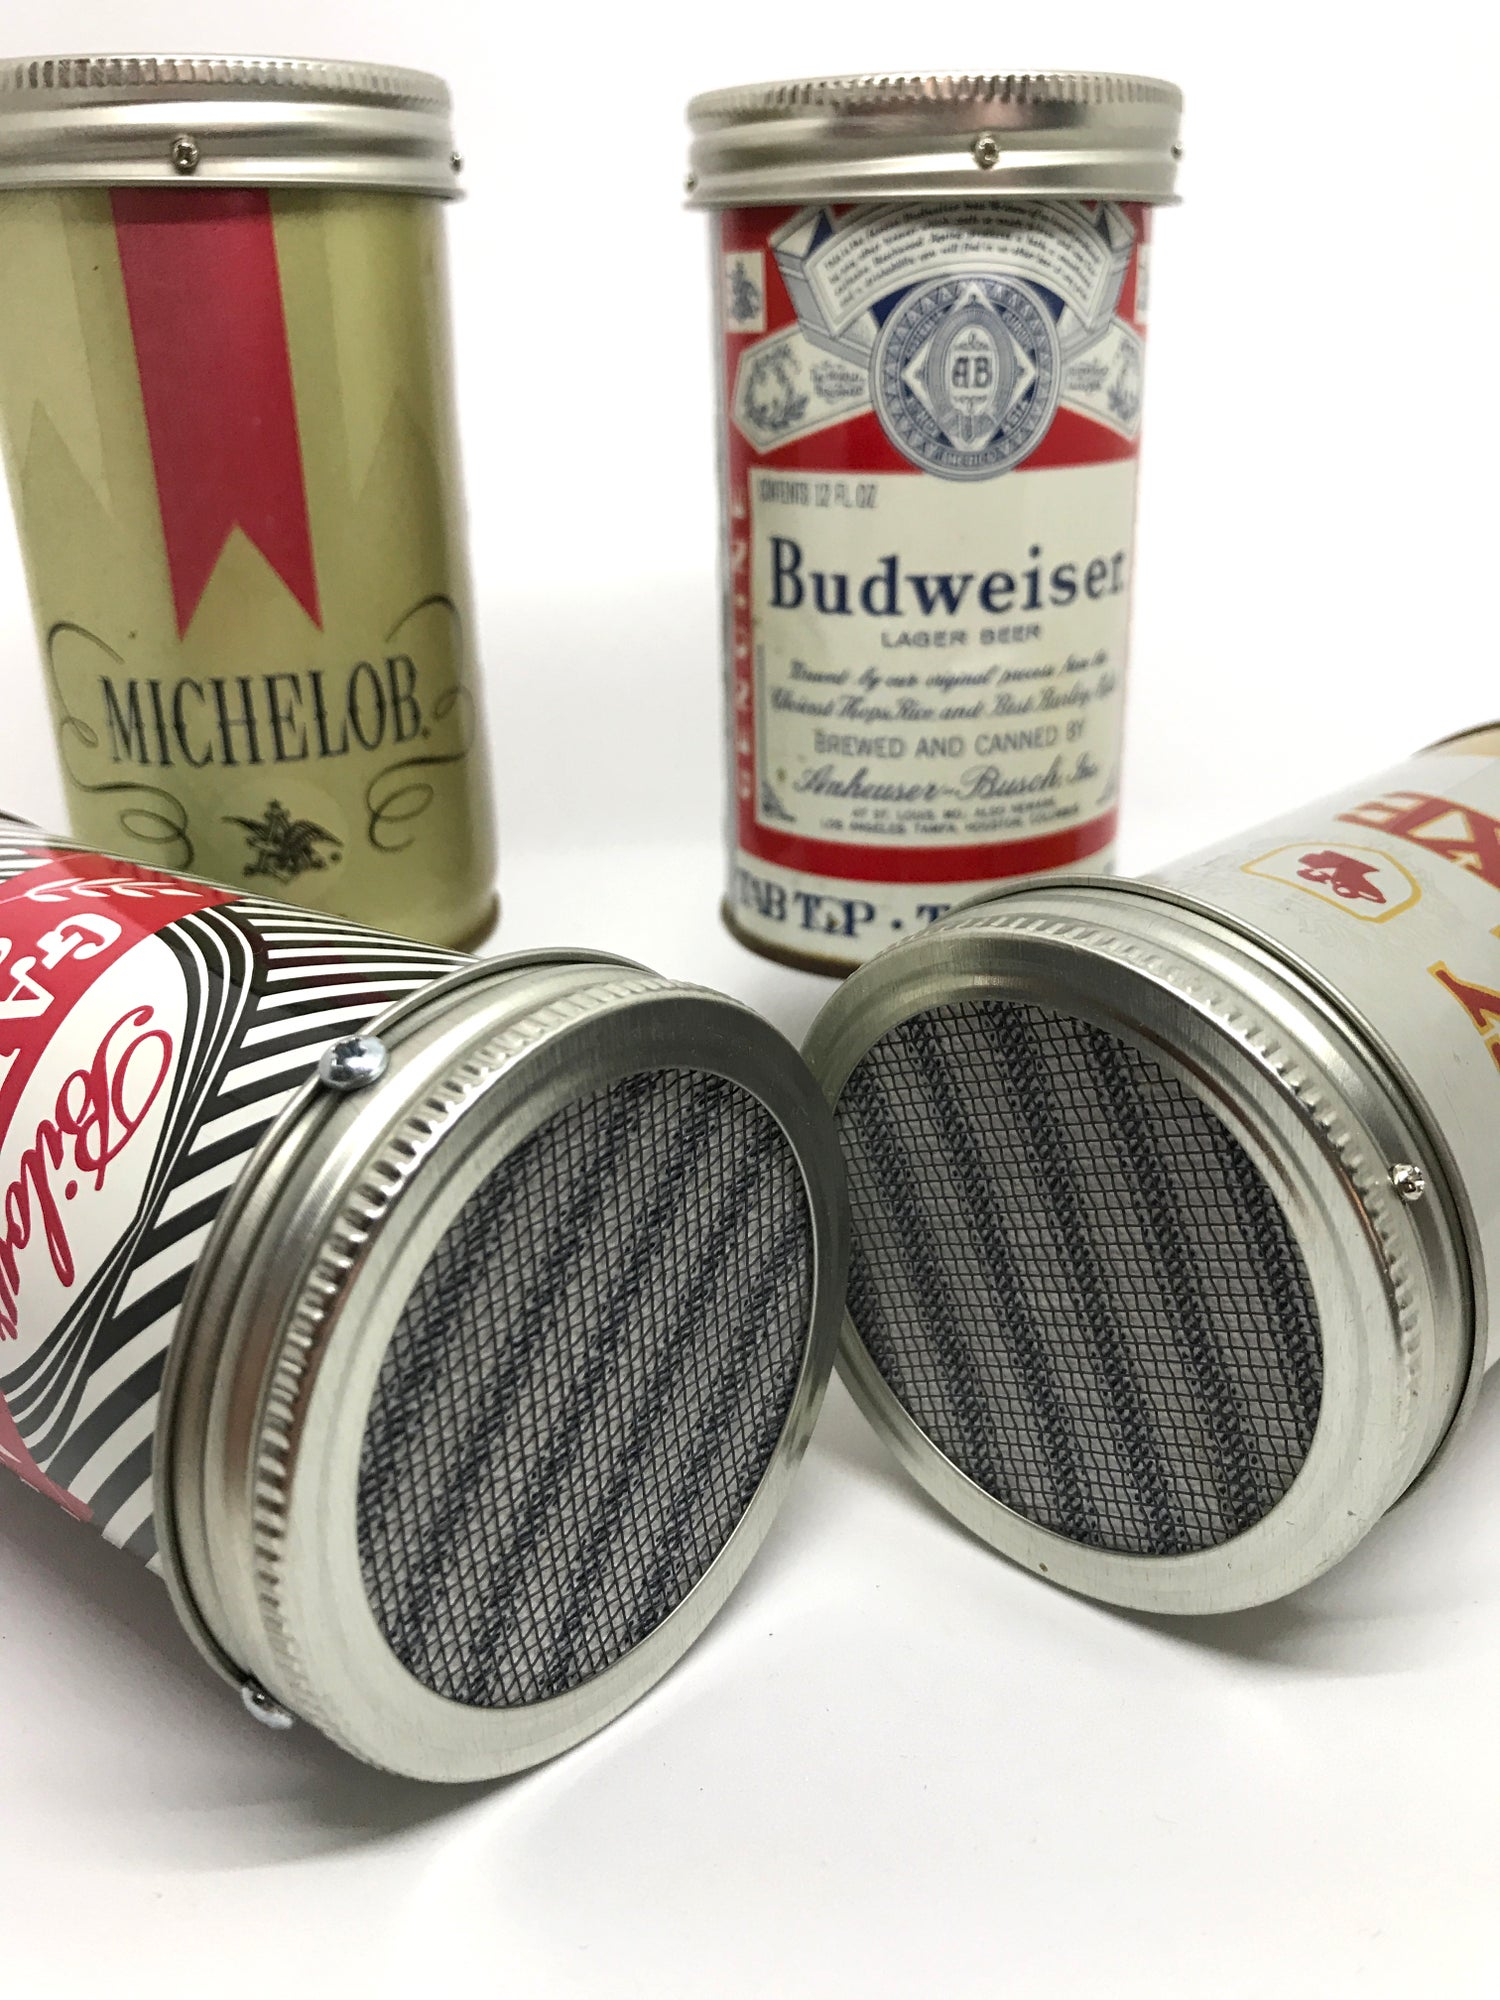 Image of Rust-o-Phonic Microphone (real beer can!) AM radio tones